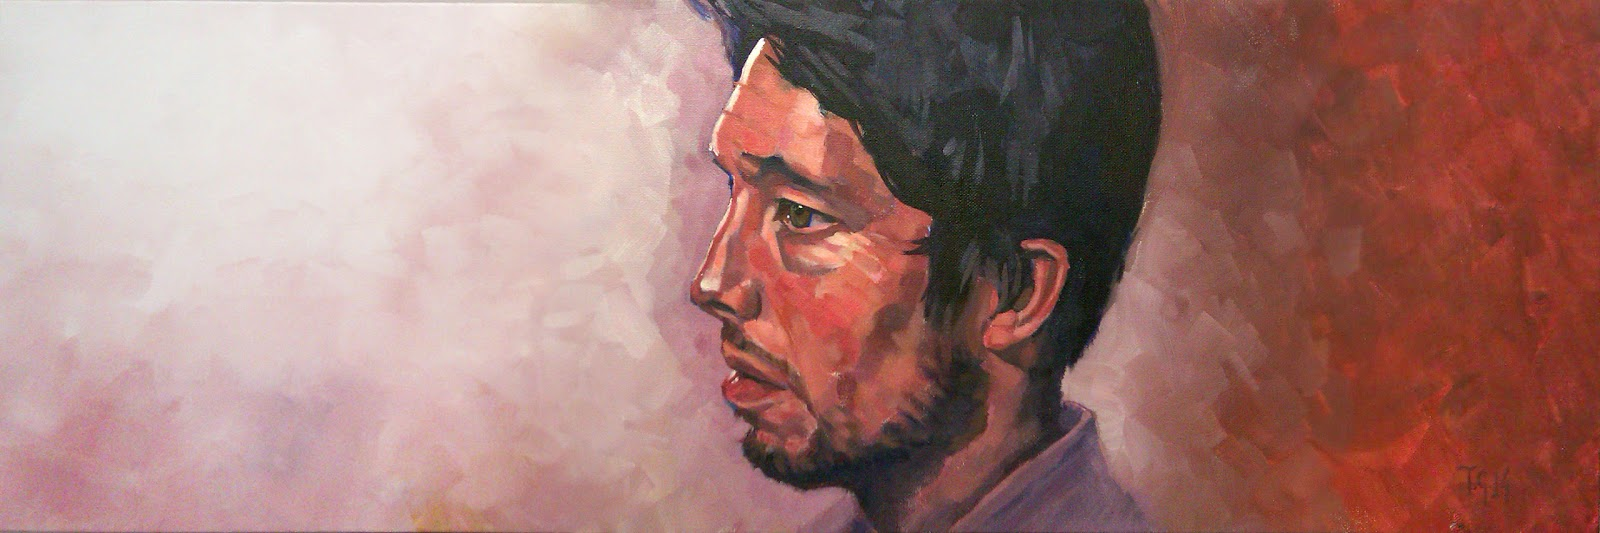 Painting no.18 'The Eternal Now. Aynsley Lister, by Anthony Greentree